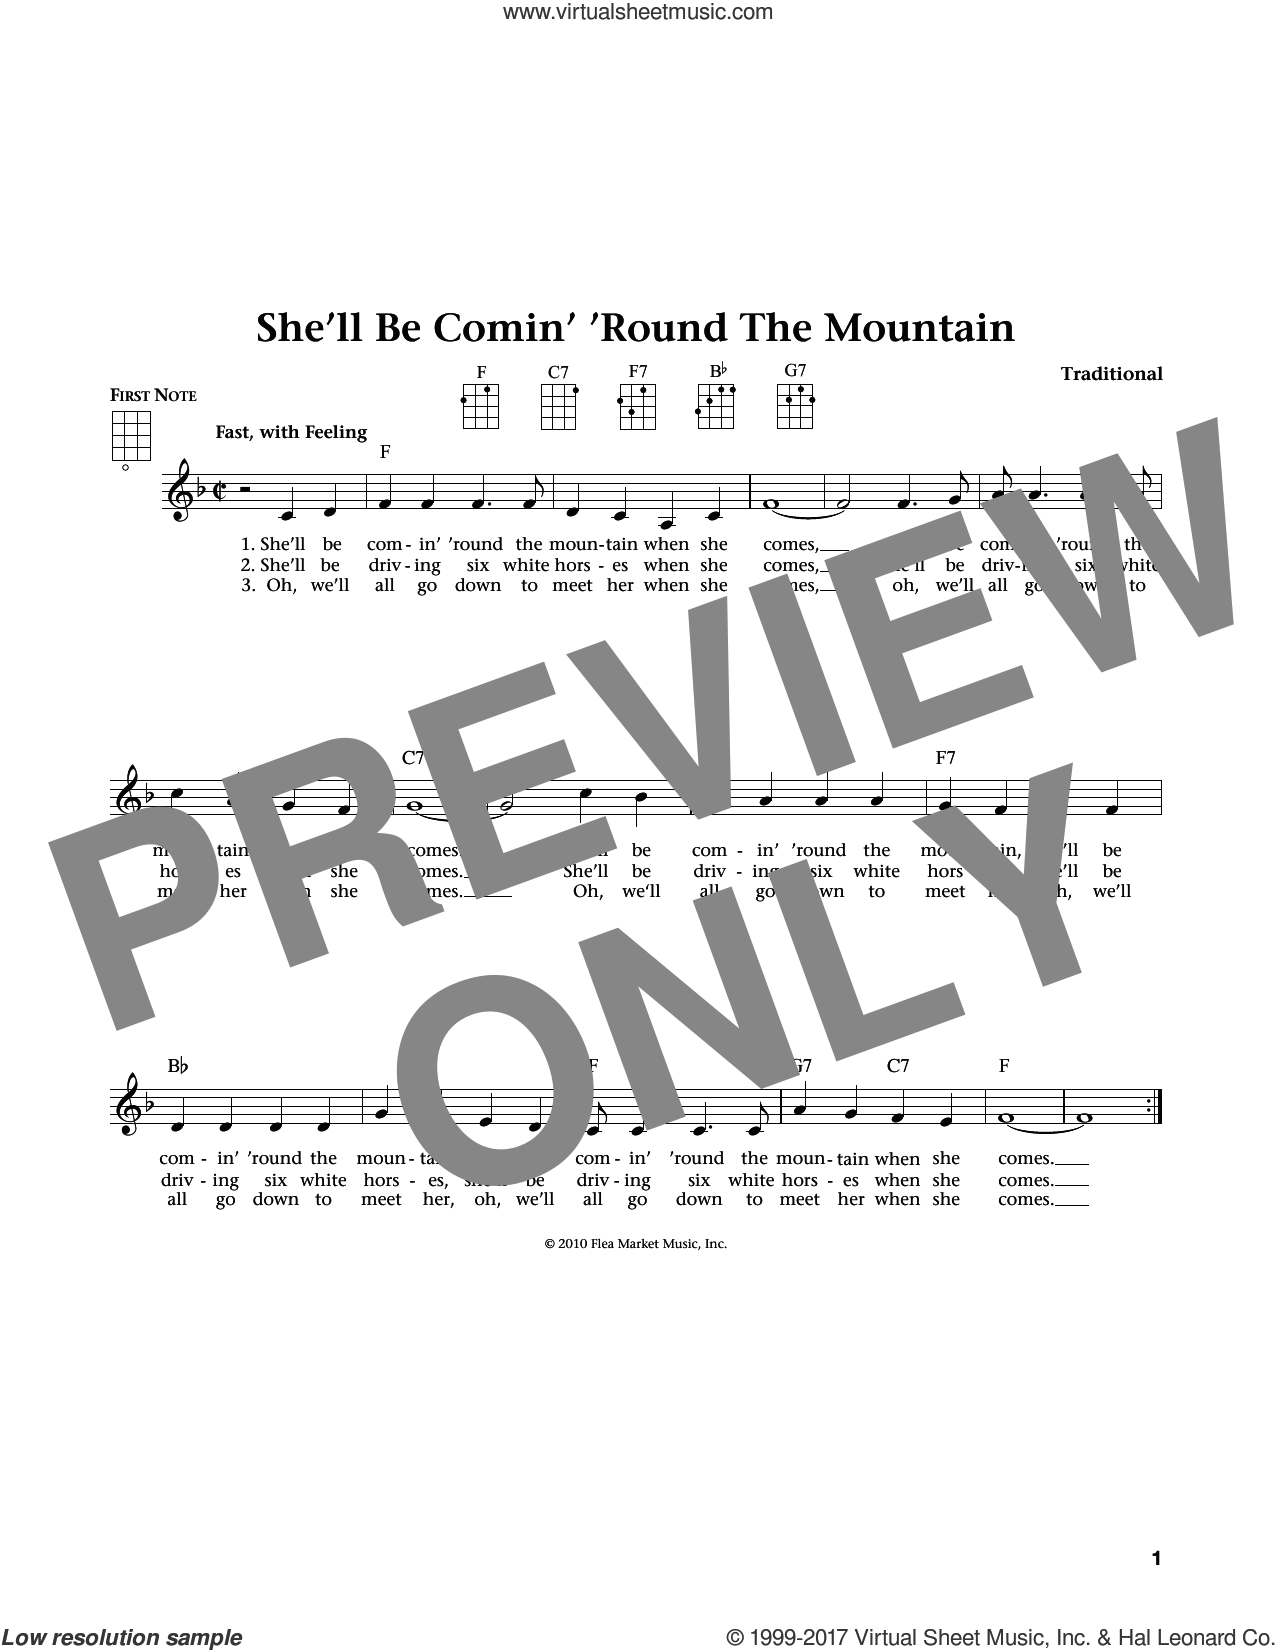 She'll Be Comin' 'Round The Mountain (from The Daily Ukulele) (arr. Liz and Jim Beloff) sheet music for ukulele , Jim Beloff and Liz Beloff, intermediate skill level